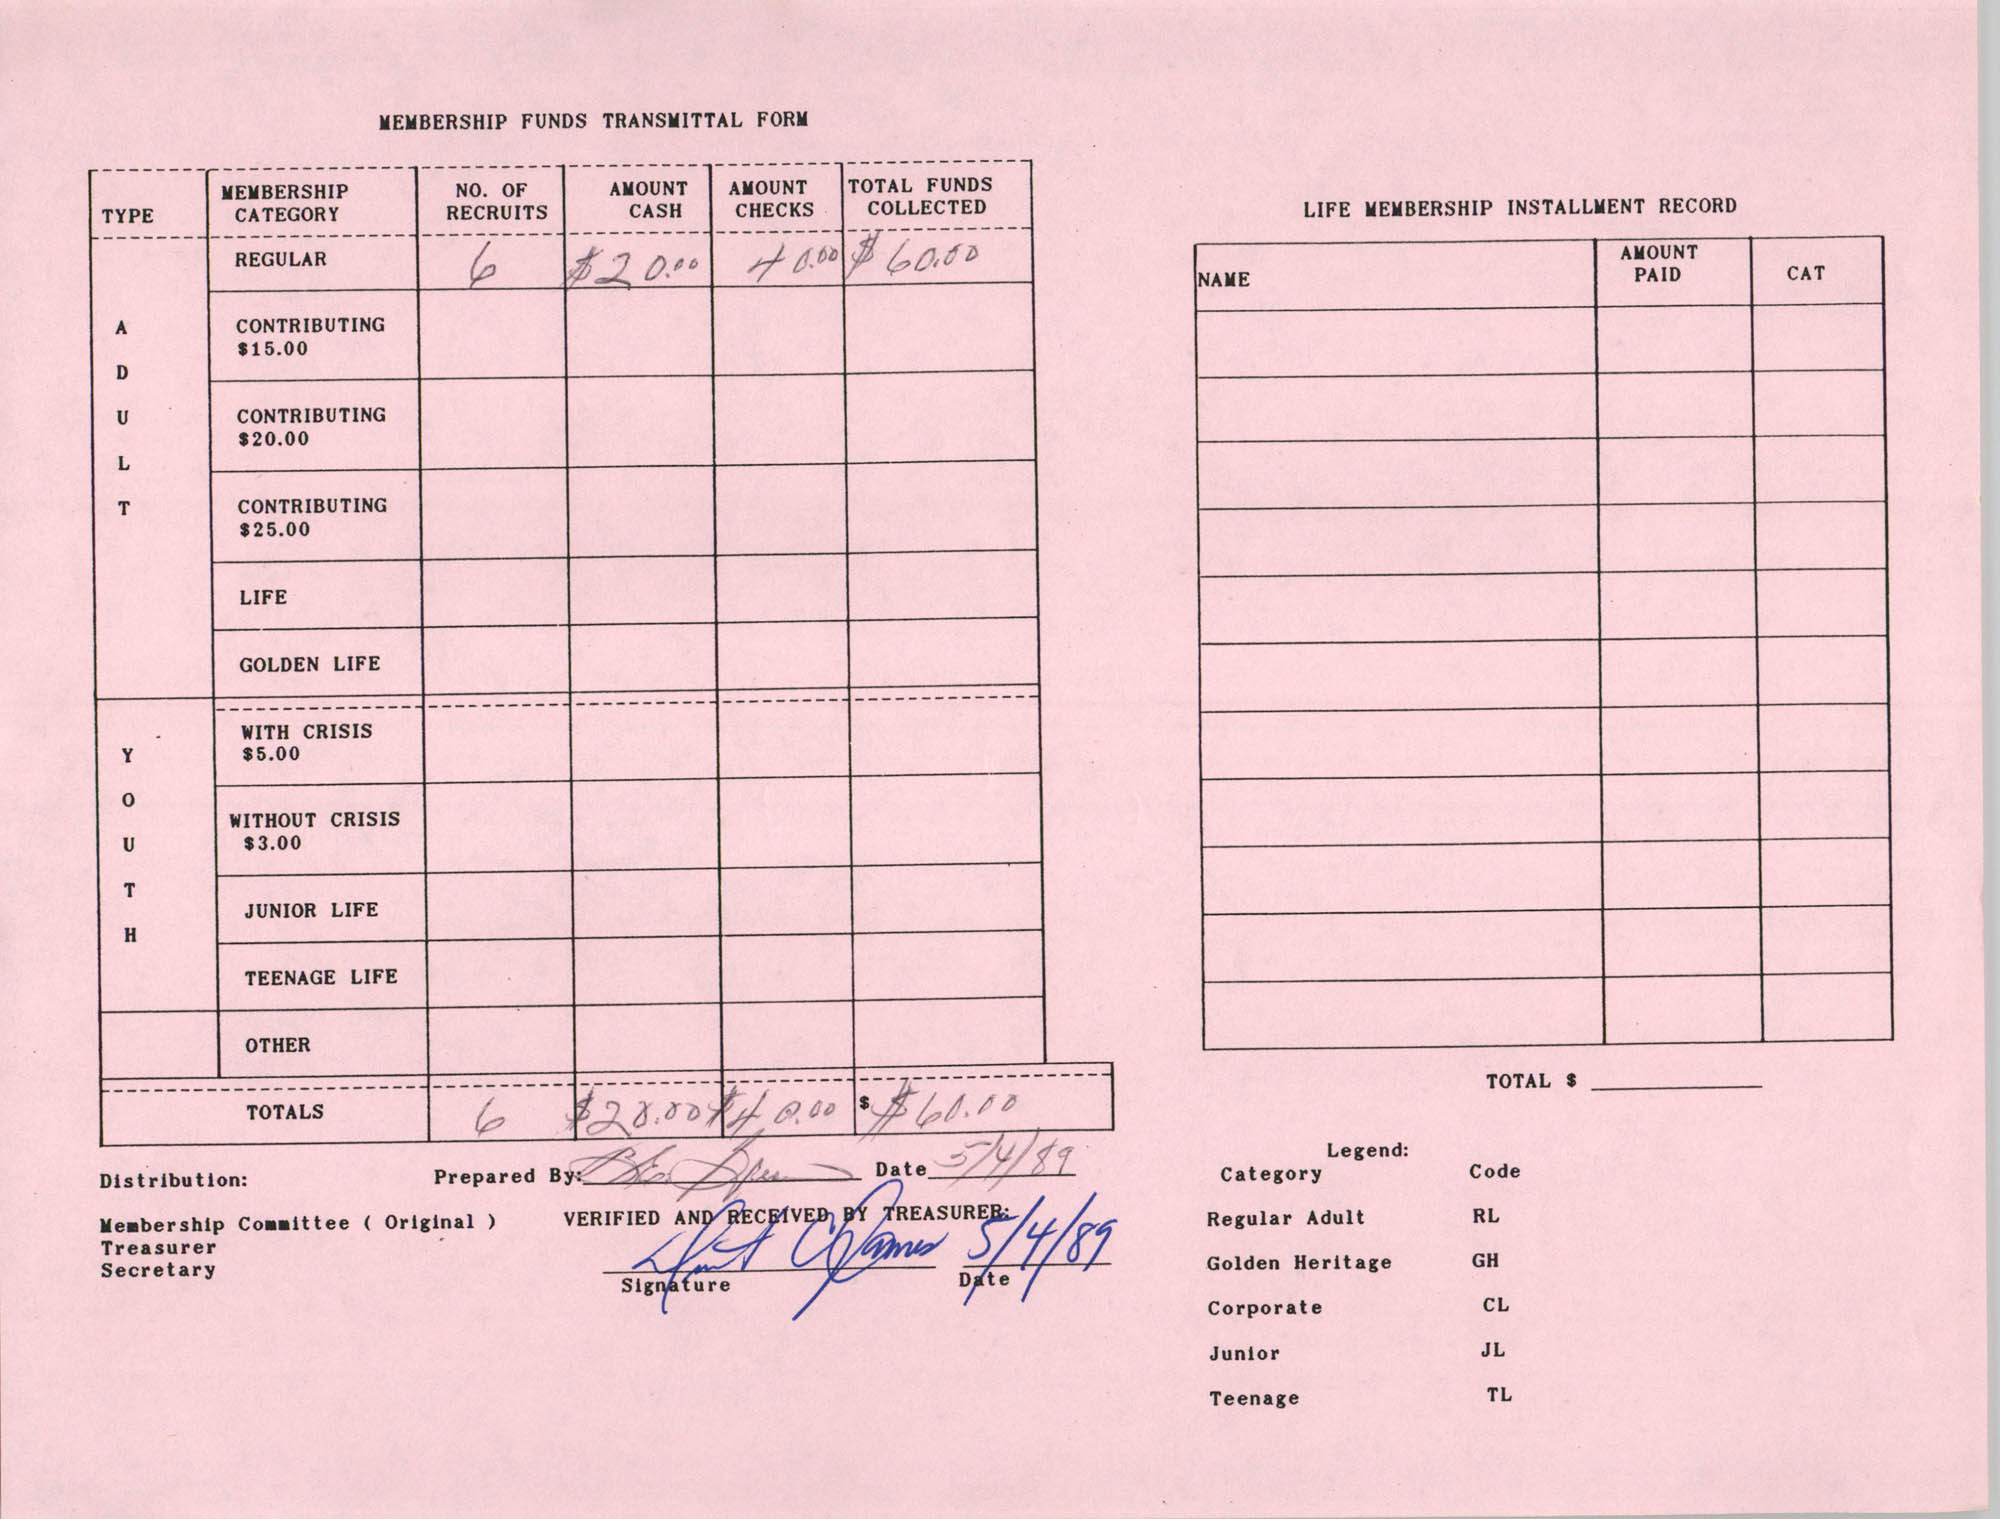 Charleston Branch of the NAACP Funds Transmittal Forms, May 1989, Page 2